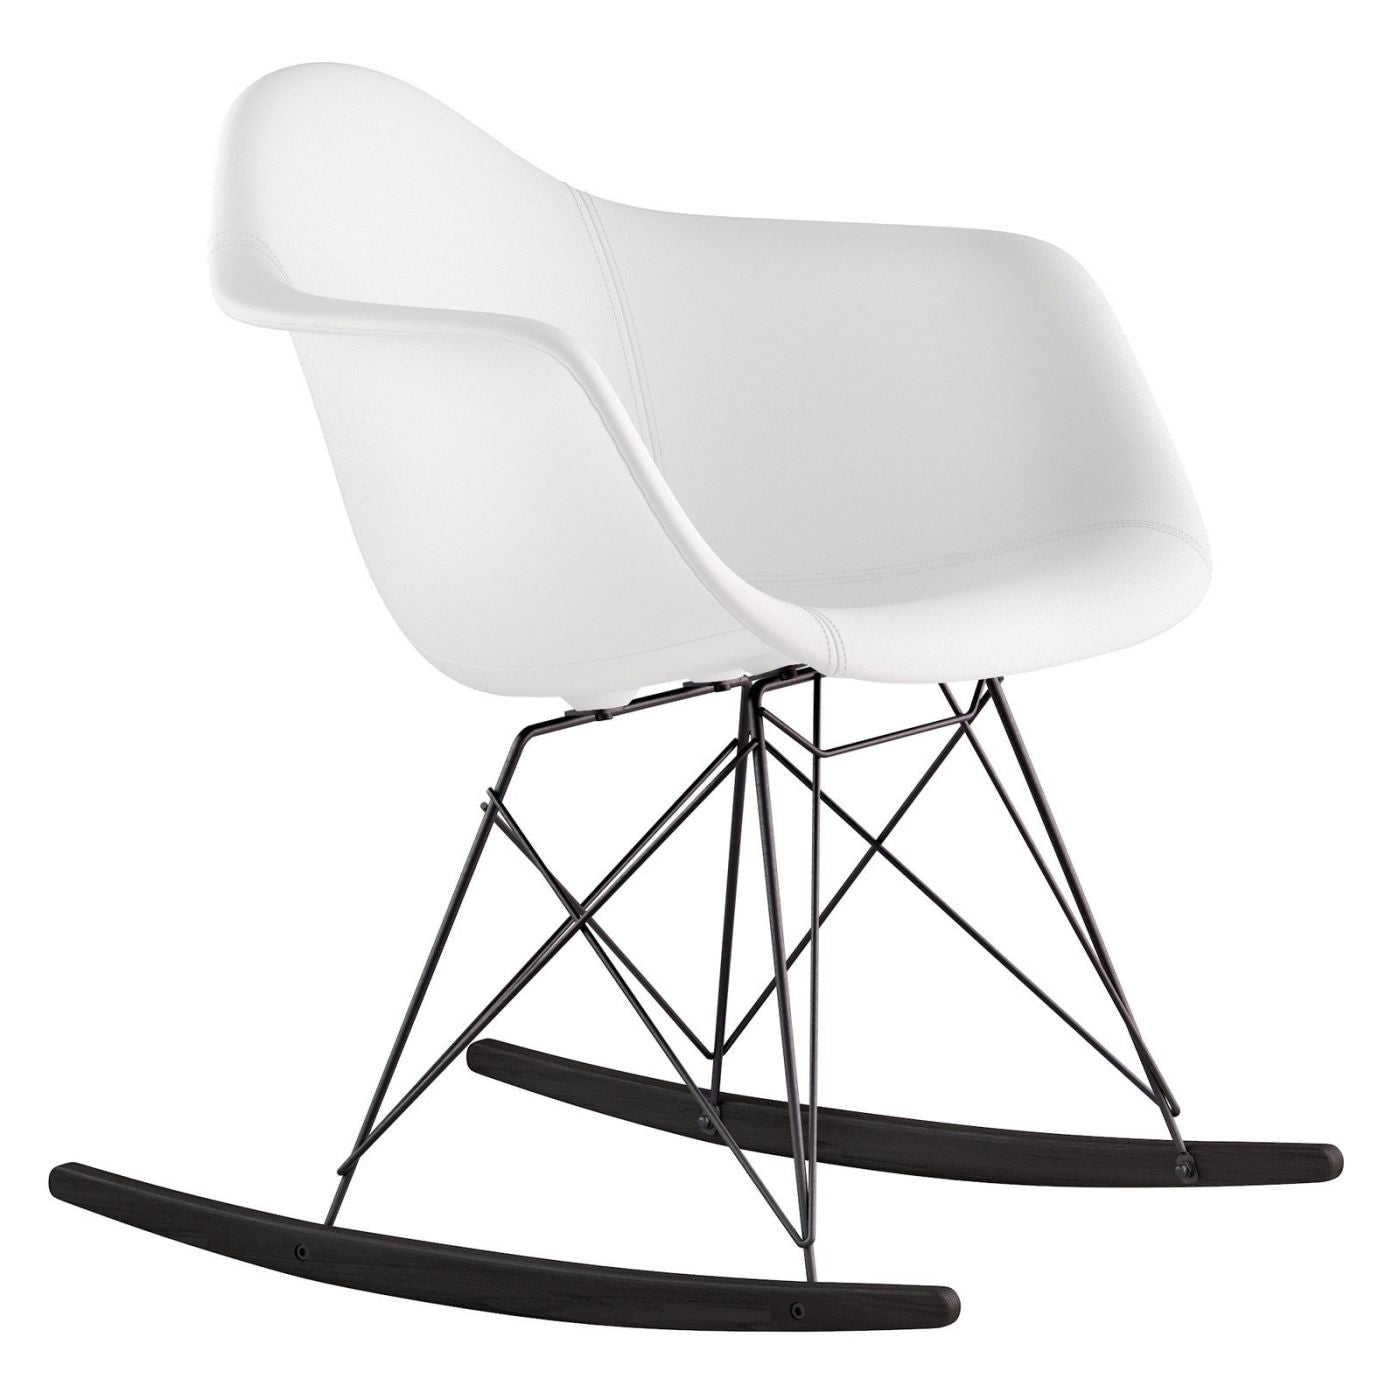 stunning petite chairs indoor for deals ideas iron contemporary armchair funky design sam klein white of black on modern full upholstered mid size log gray rocking interesting swivel comfortable and chair cheap baby sale century rocker maloof wooden furnuu